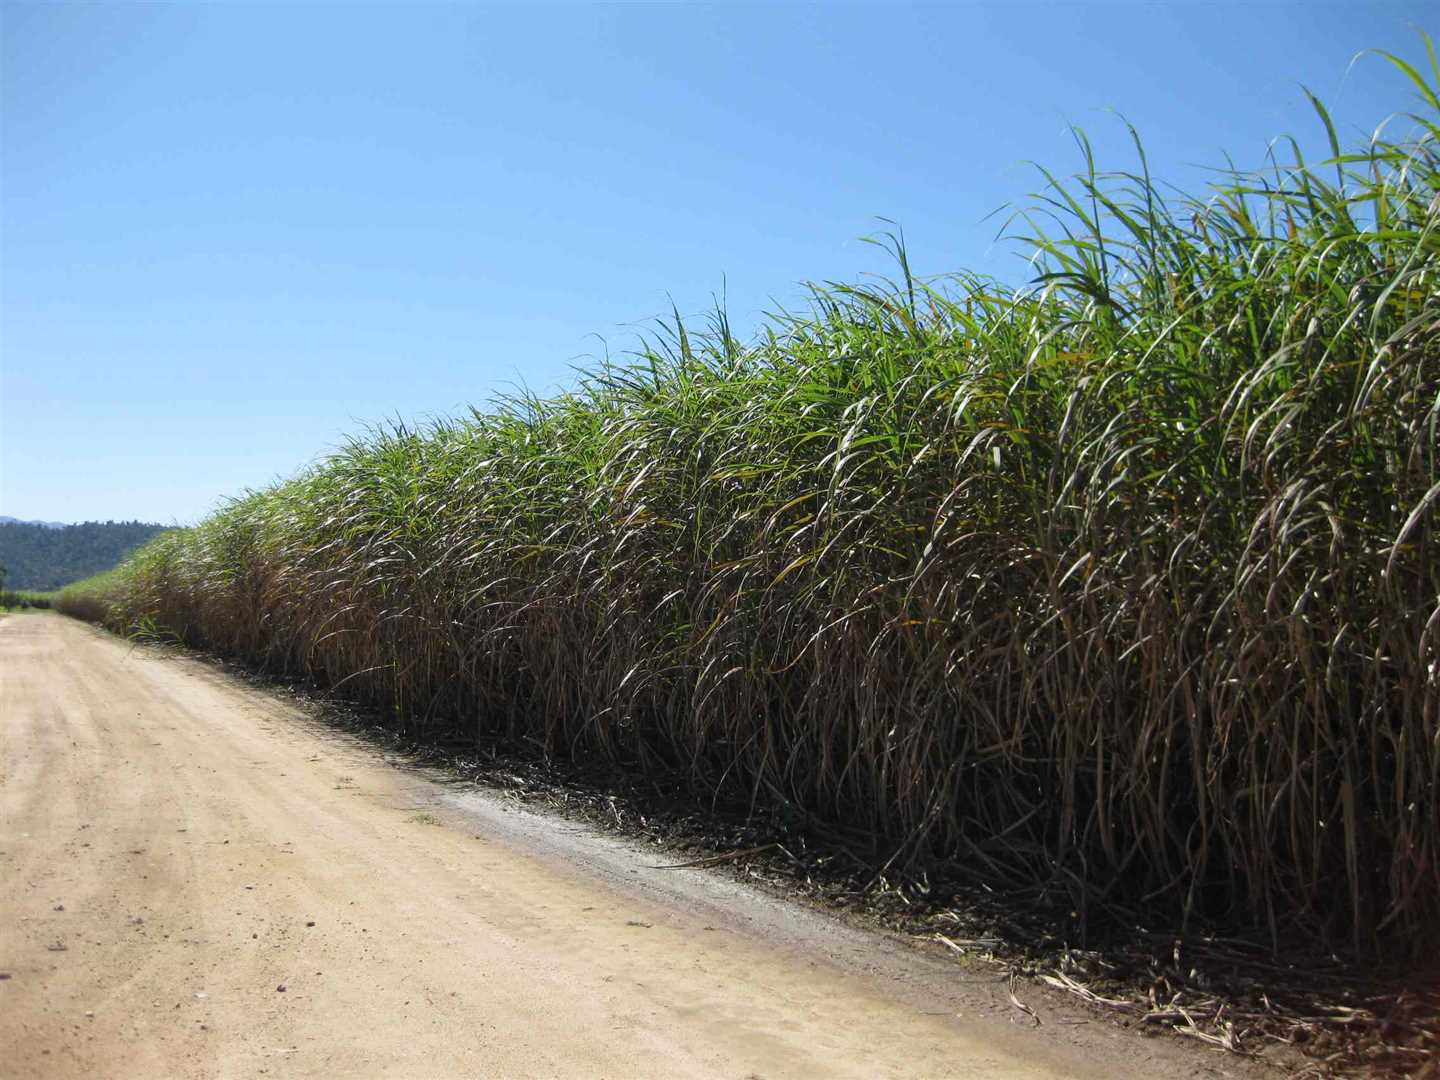 View of part of property showing part of cane crop, photo 1